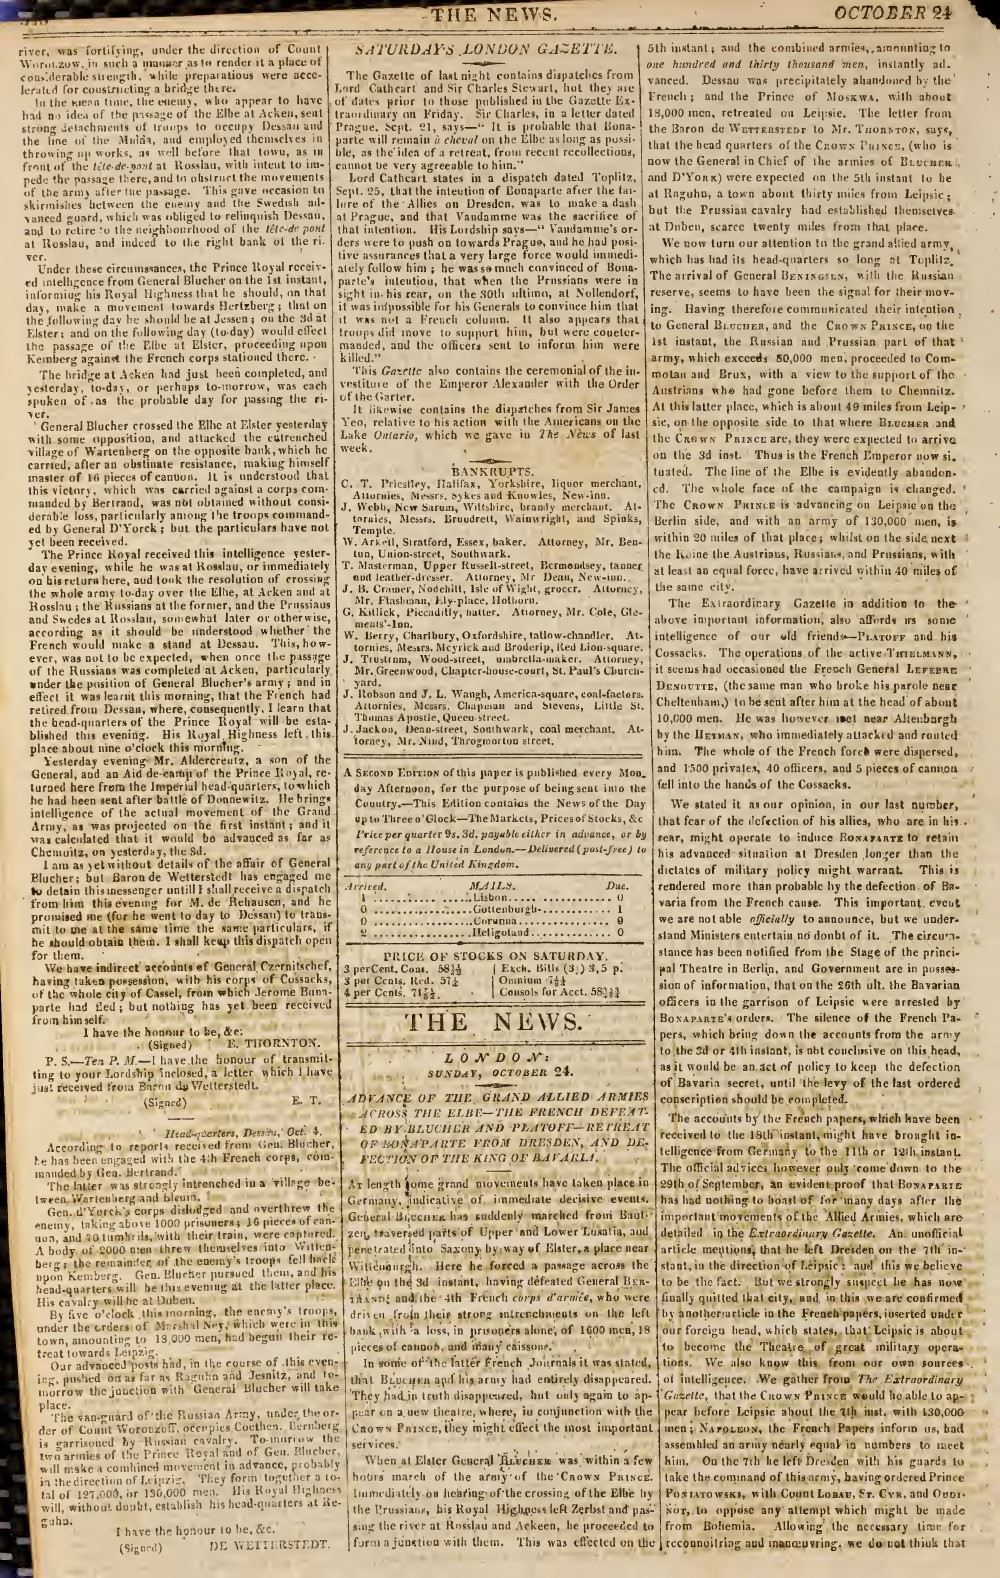 The News, 24 October 1813, No. 433